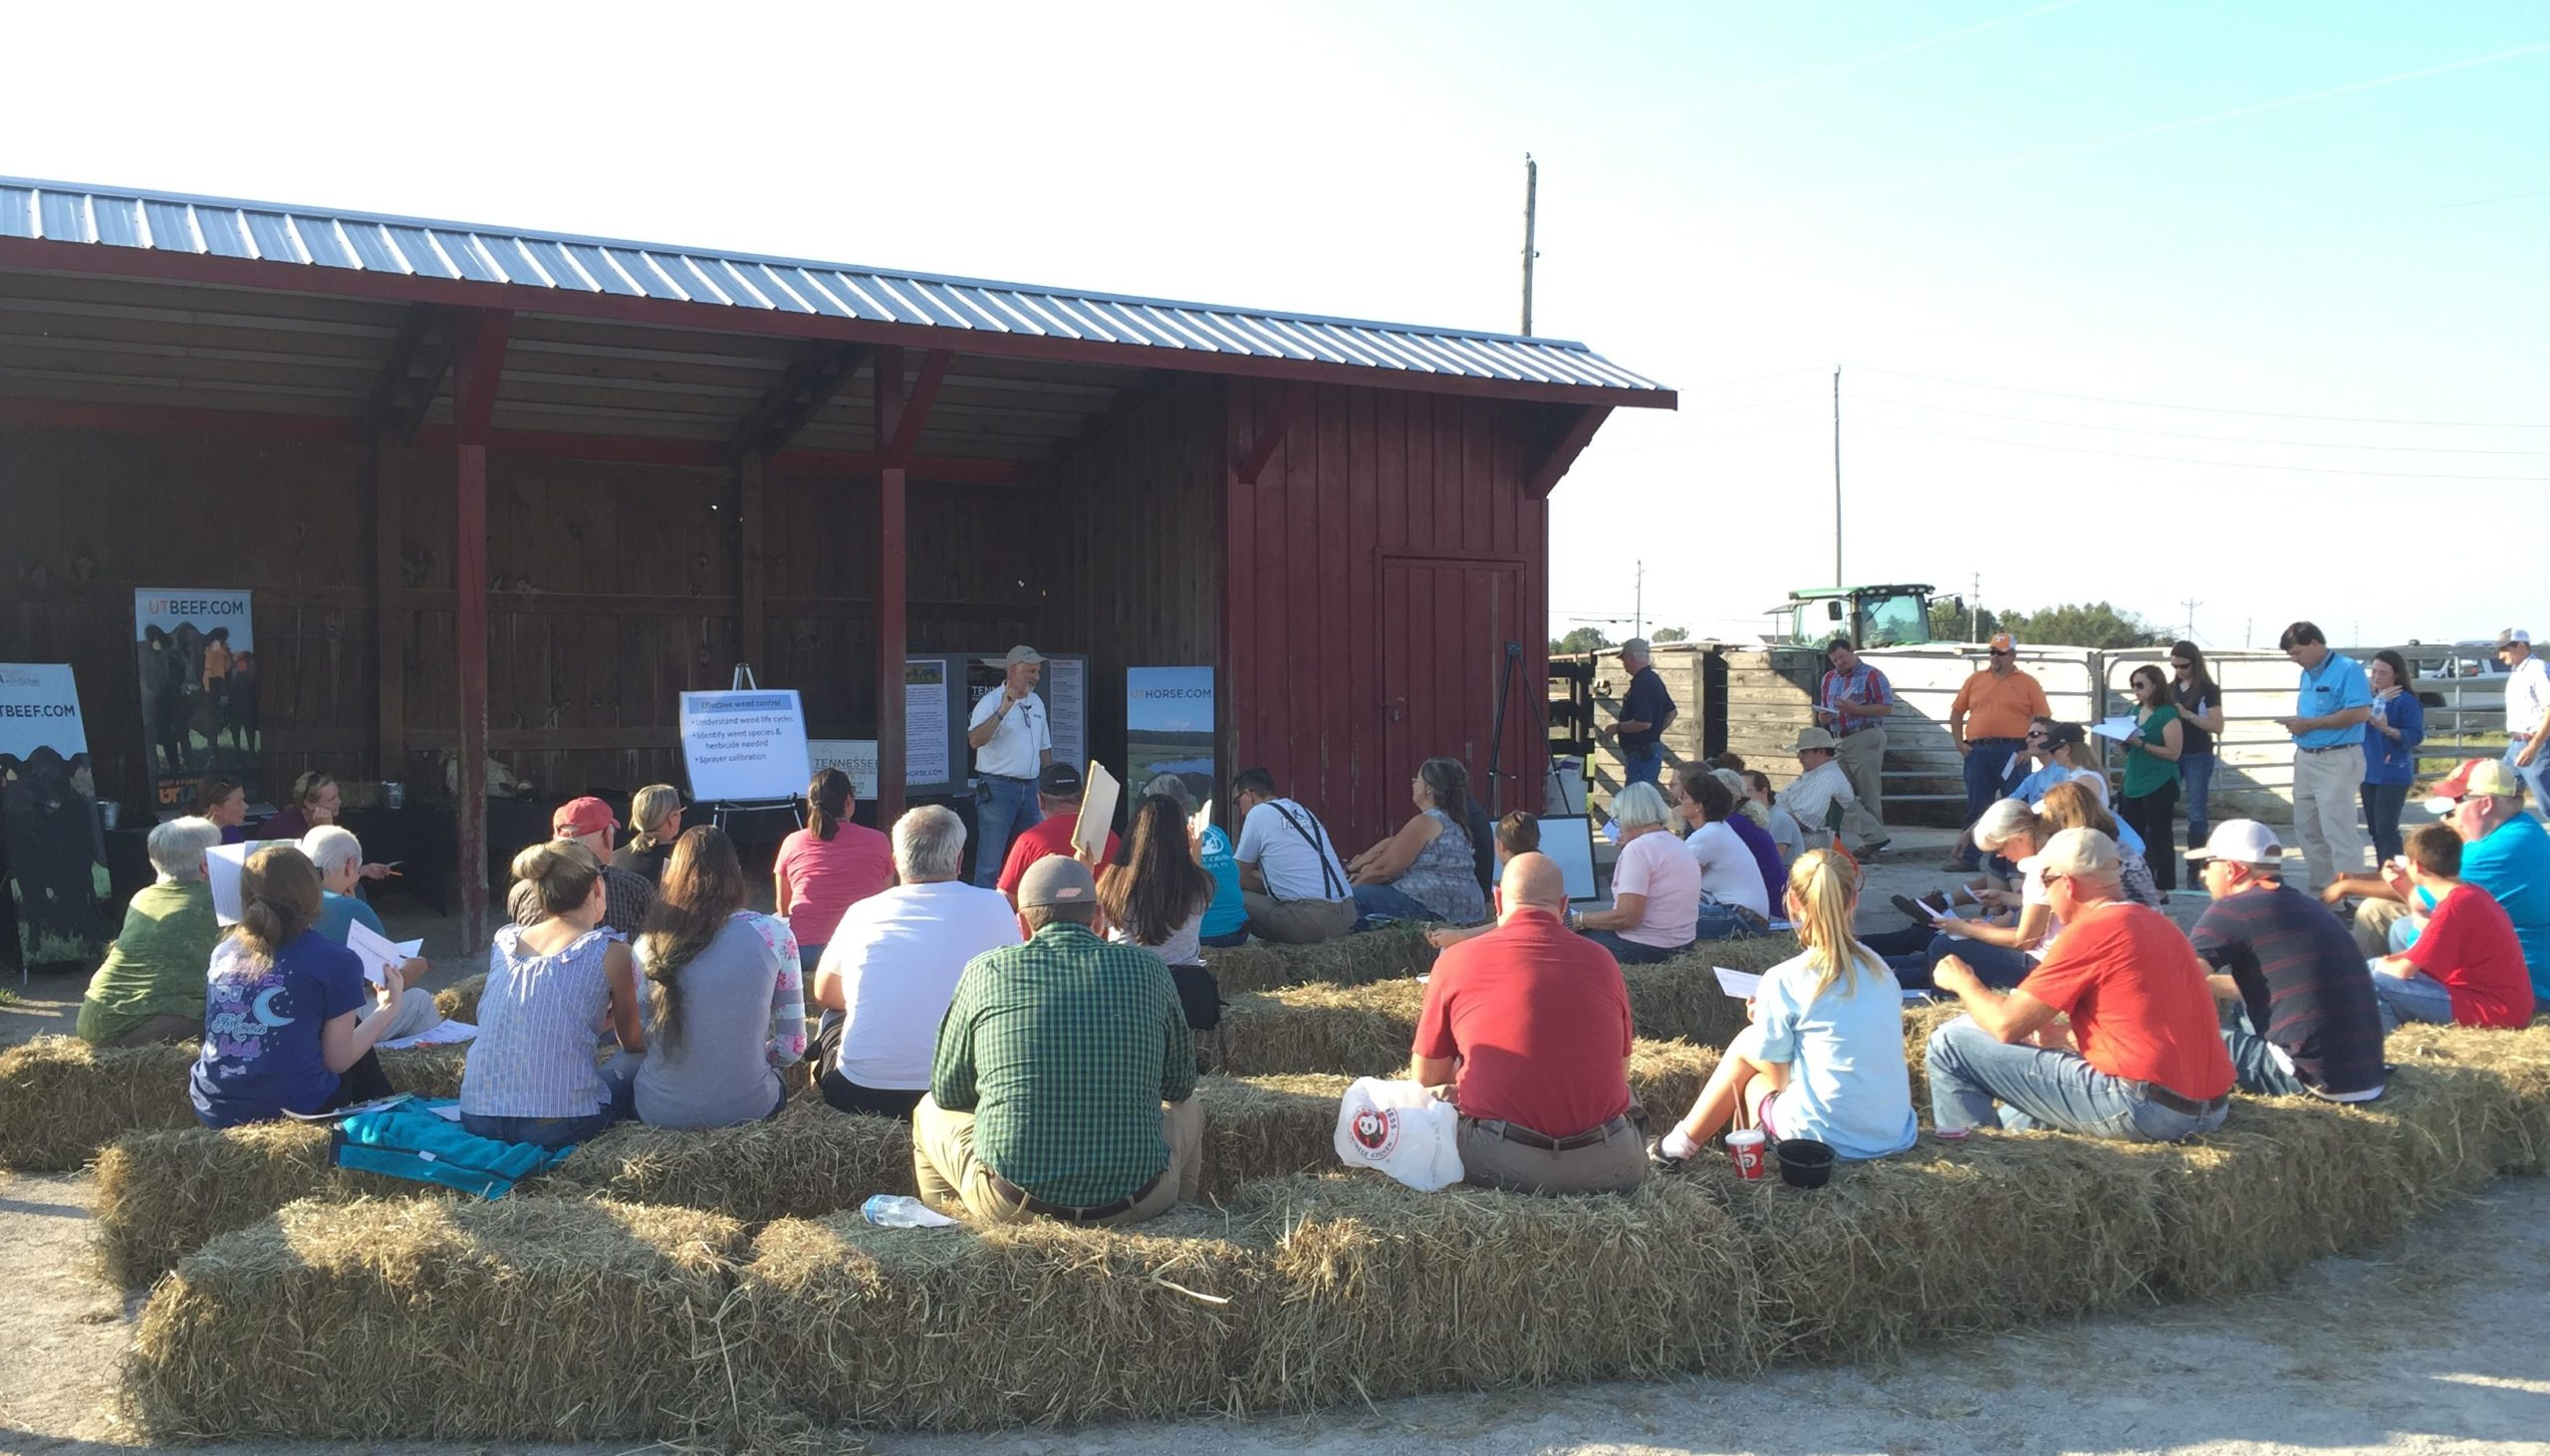 people sitting on hay bales while listening to someone talk